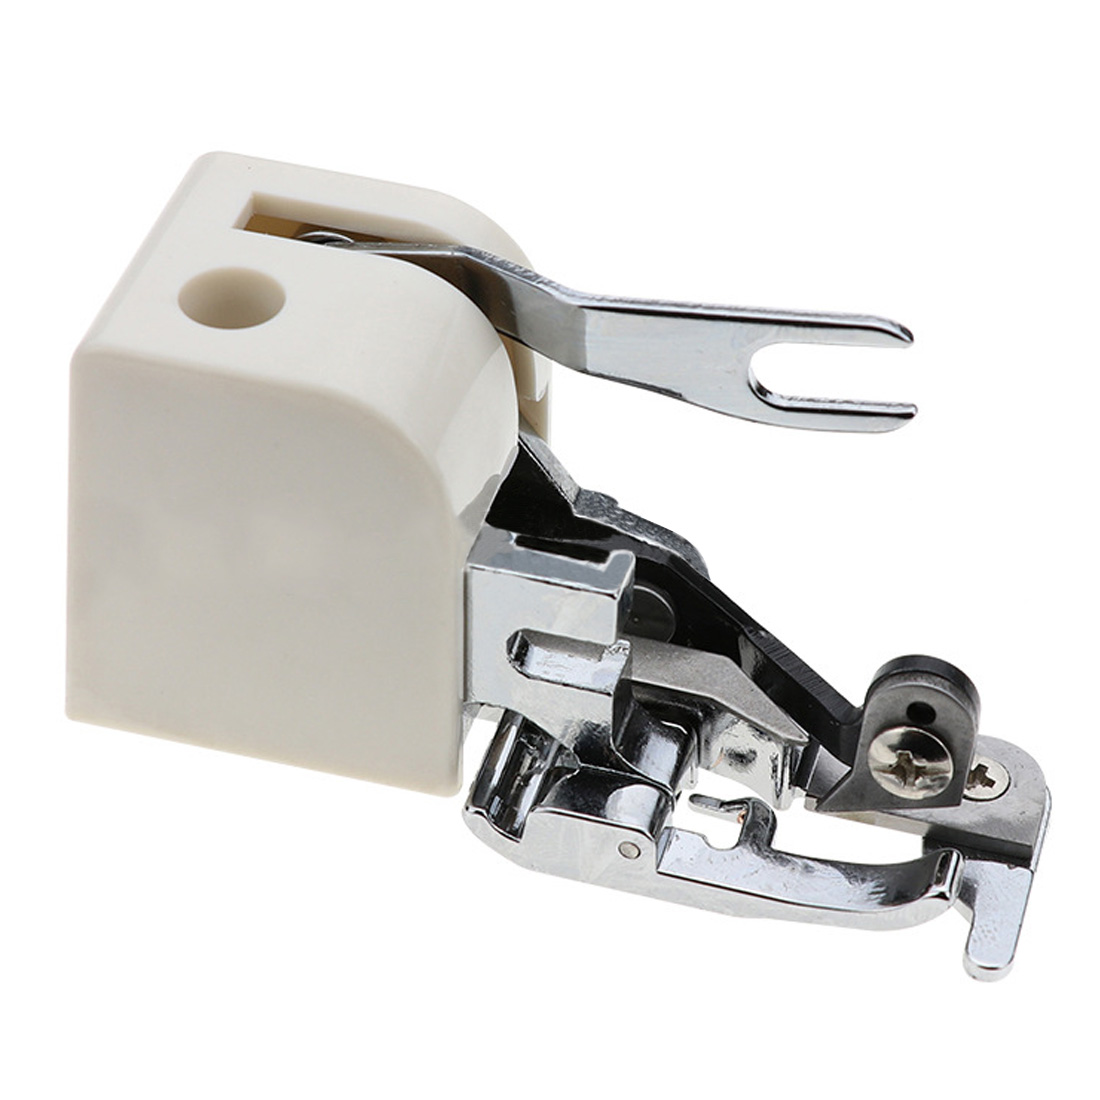 Side Cutter Overlock Sewing Machine Presser Foot Feet Sewing Machine Attachment For All Low Shank in Sewing Machines from Home Garden